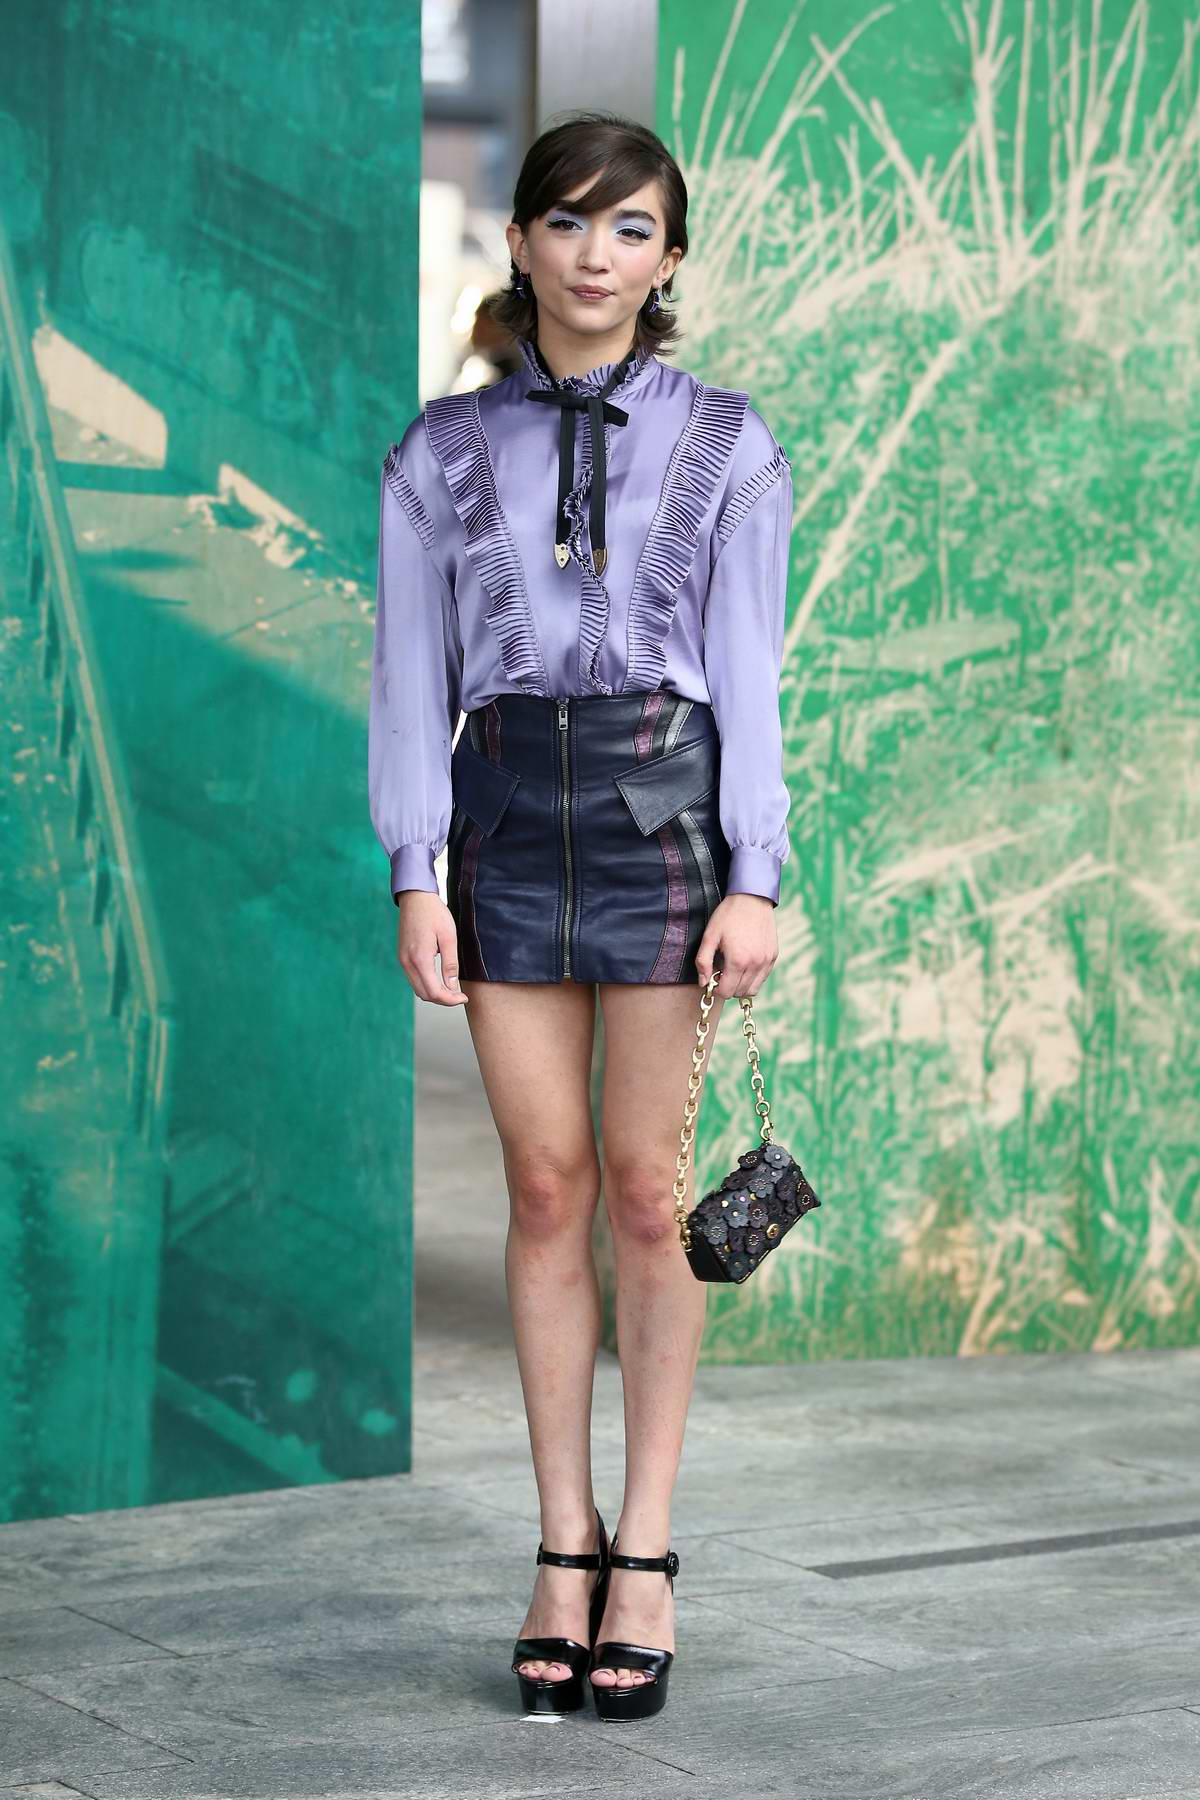 Rowan Blanchard attends the Coach 1941 show during New York Fashion Week in New York City